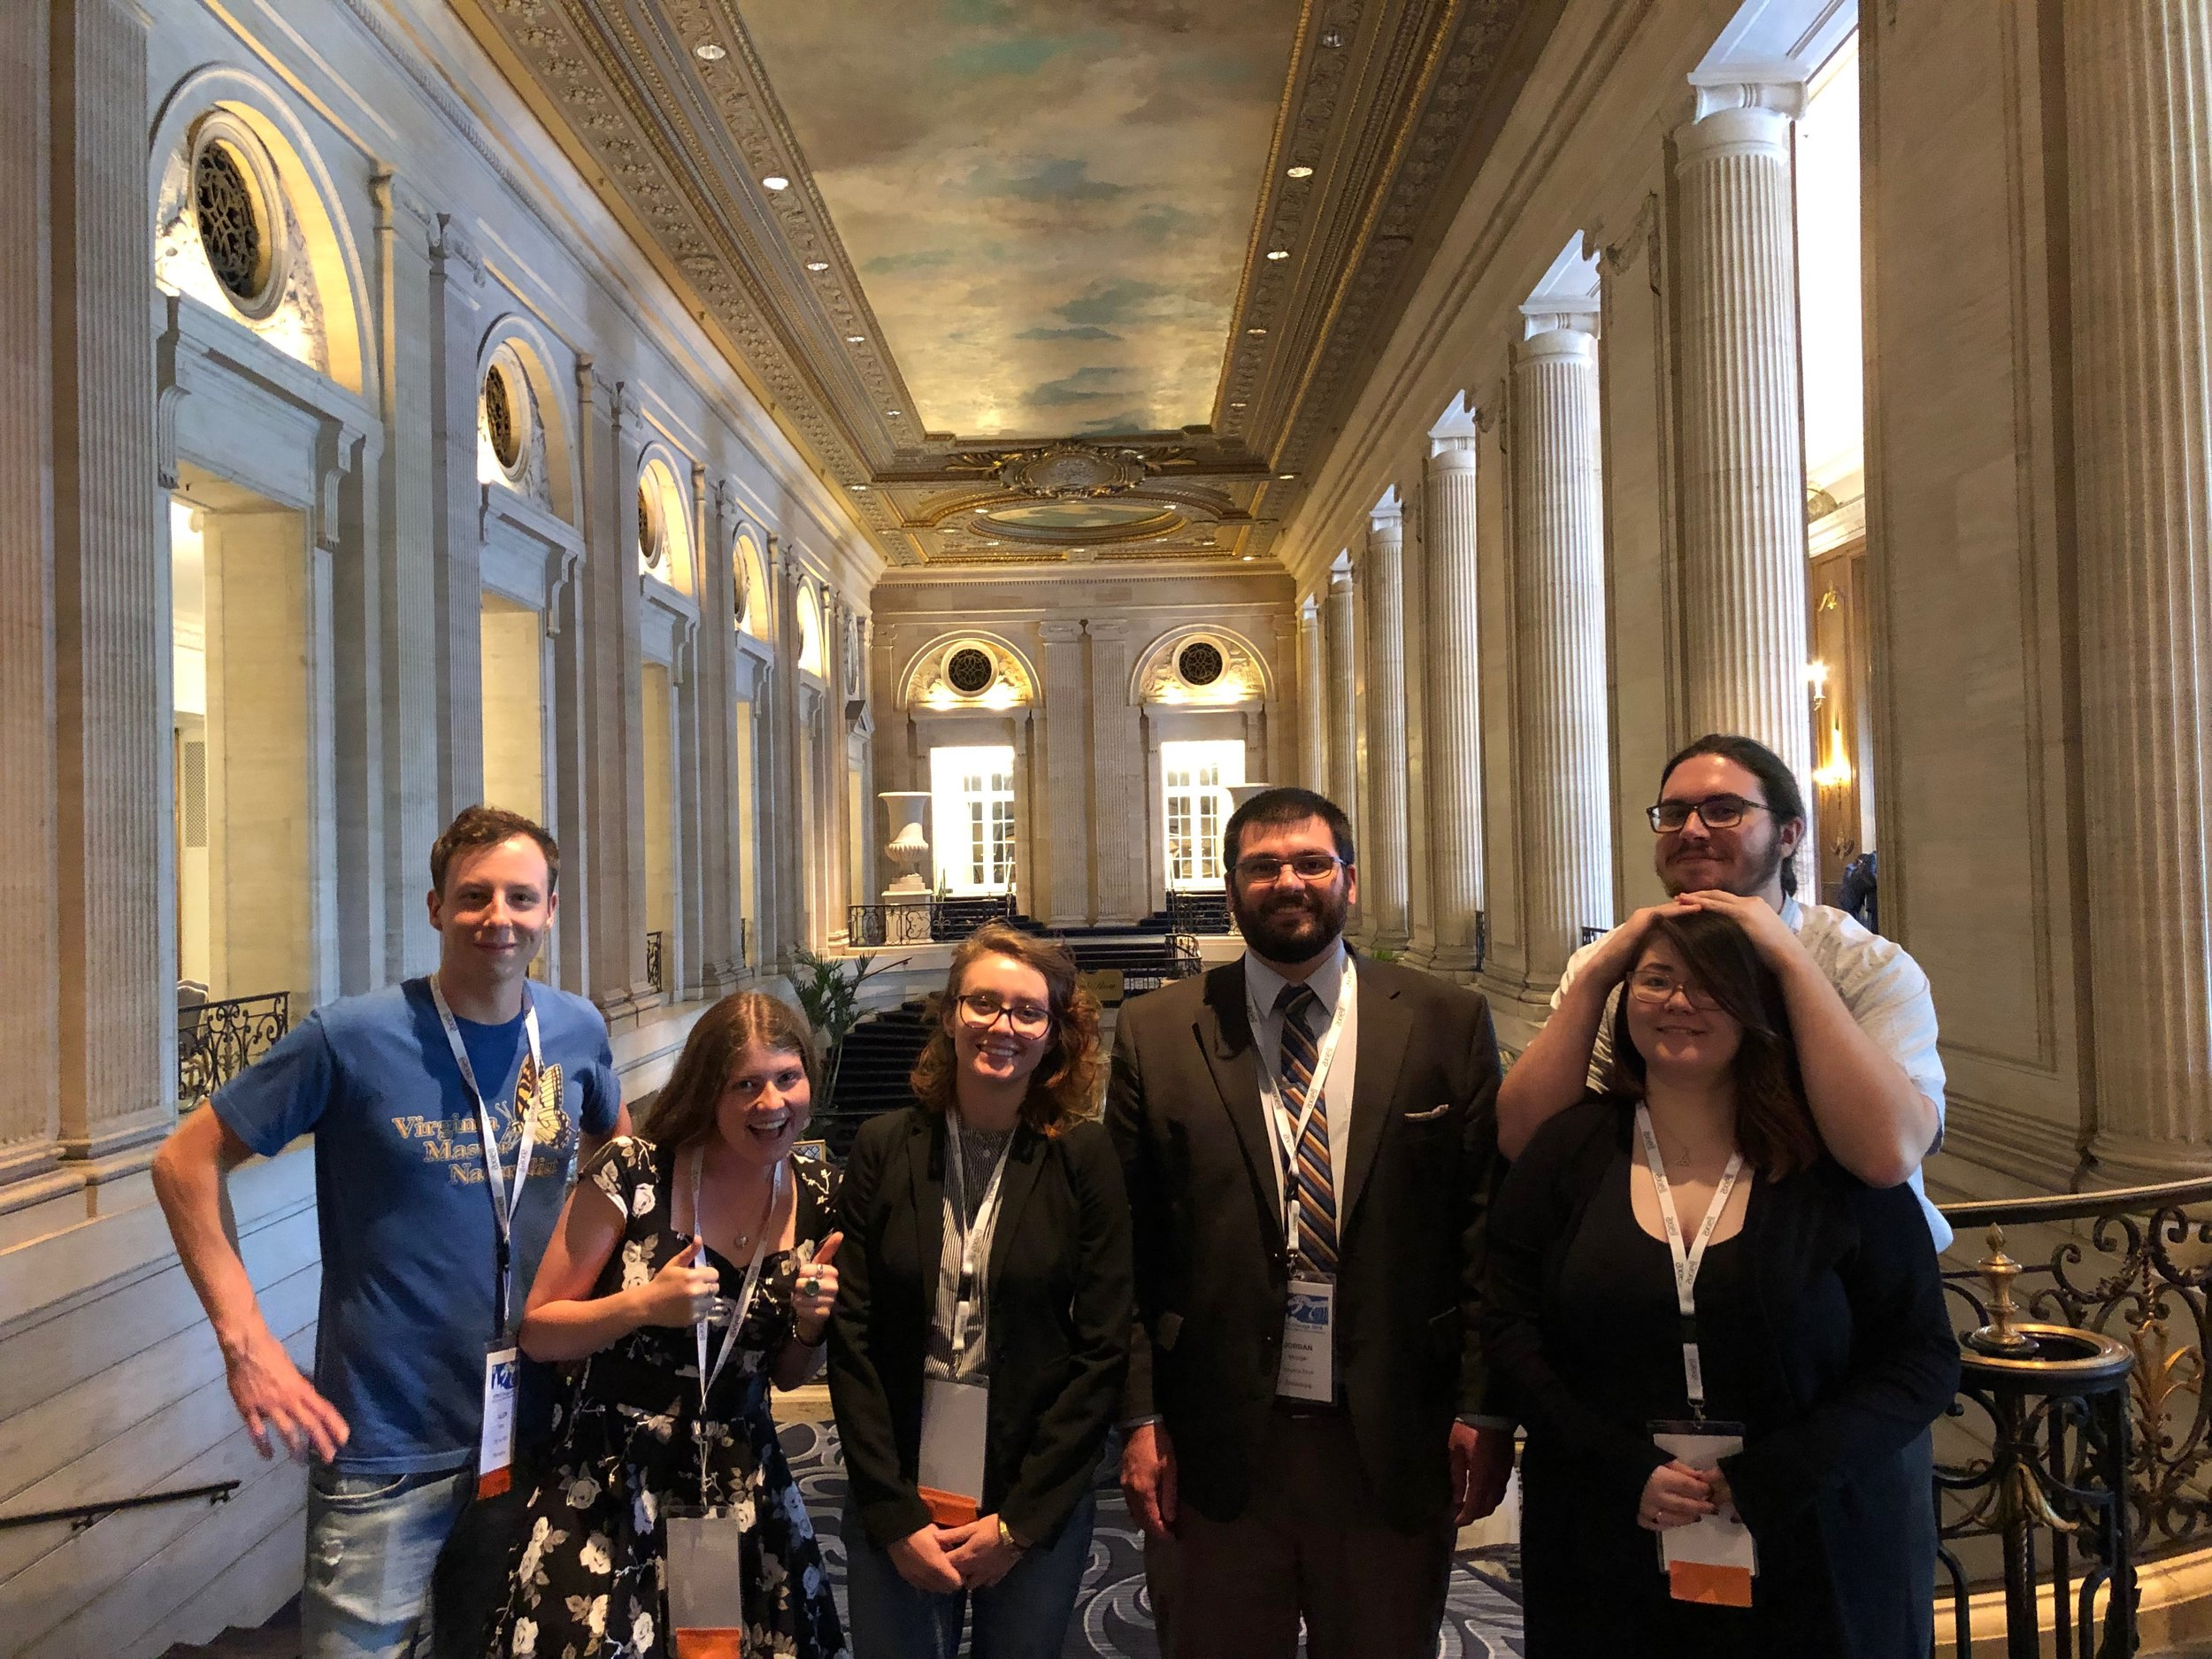 The Metzgar lab at SPNHC 2019: (L-R) Allen Milby, Erin Quesenberry, Ksenia Pereverzeva, Jordan Metzgar, Amber Reaney, Jake Riney.